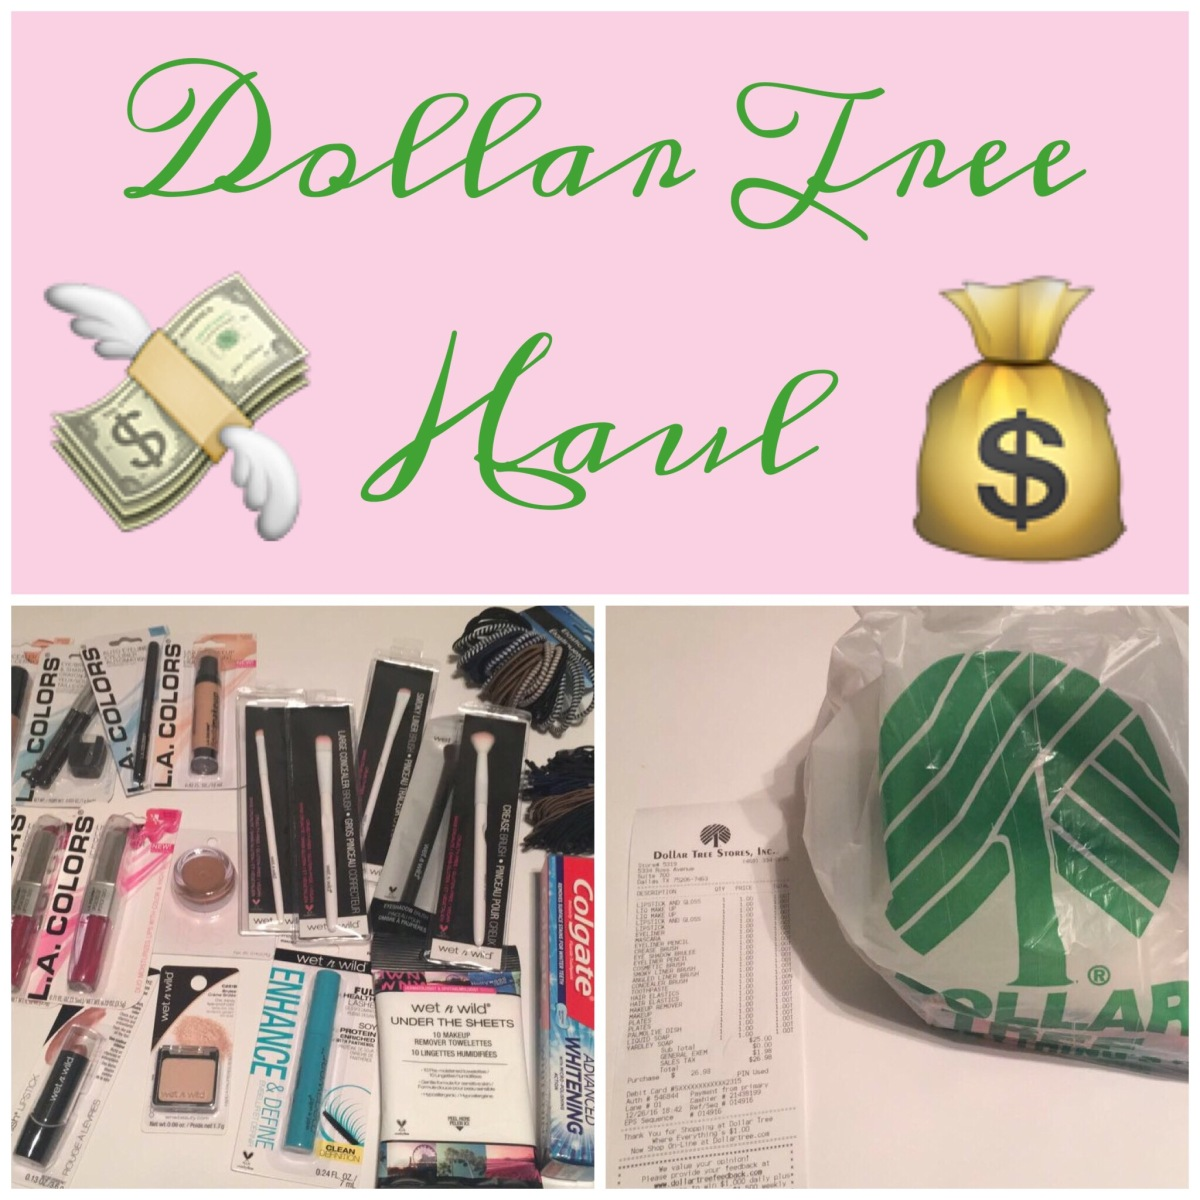 Dollar Tree Haul | Part 1: Wet n Wild